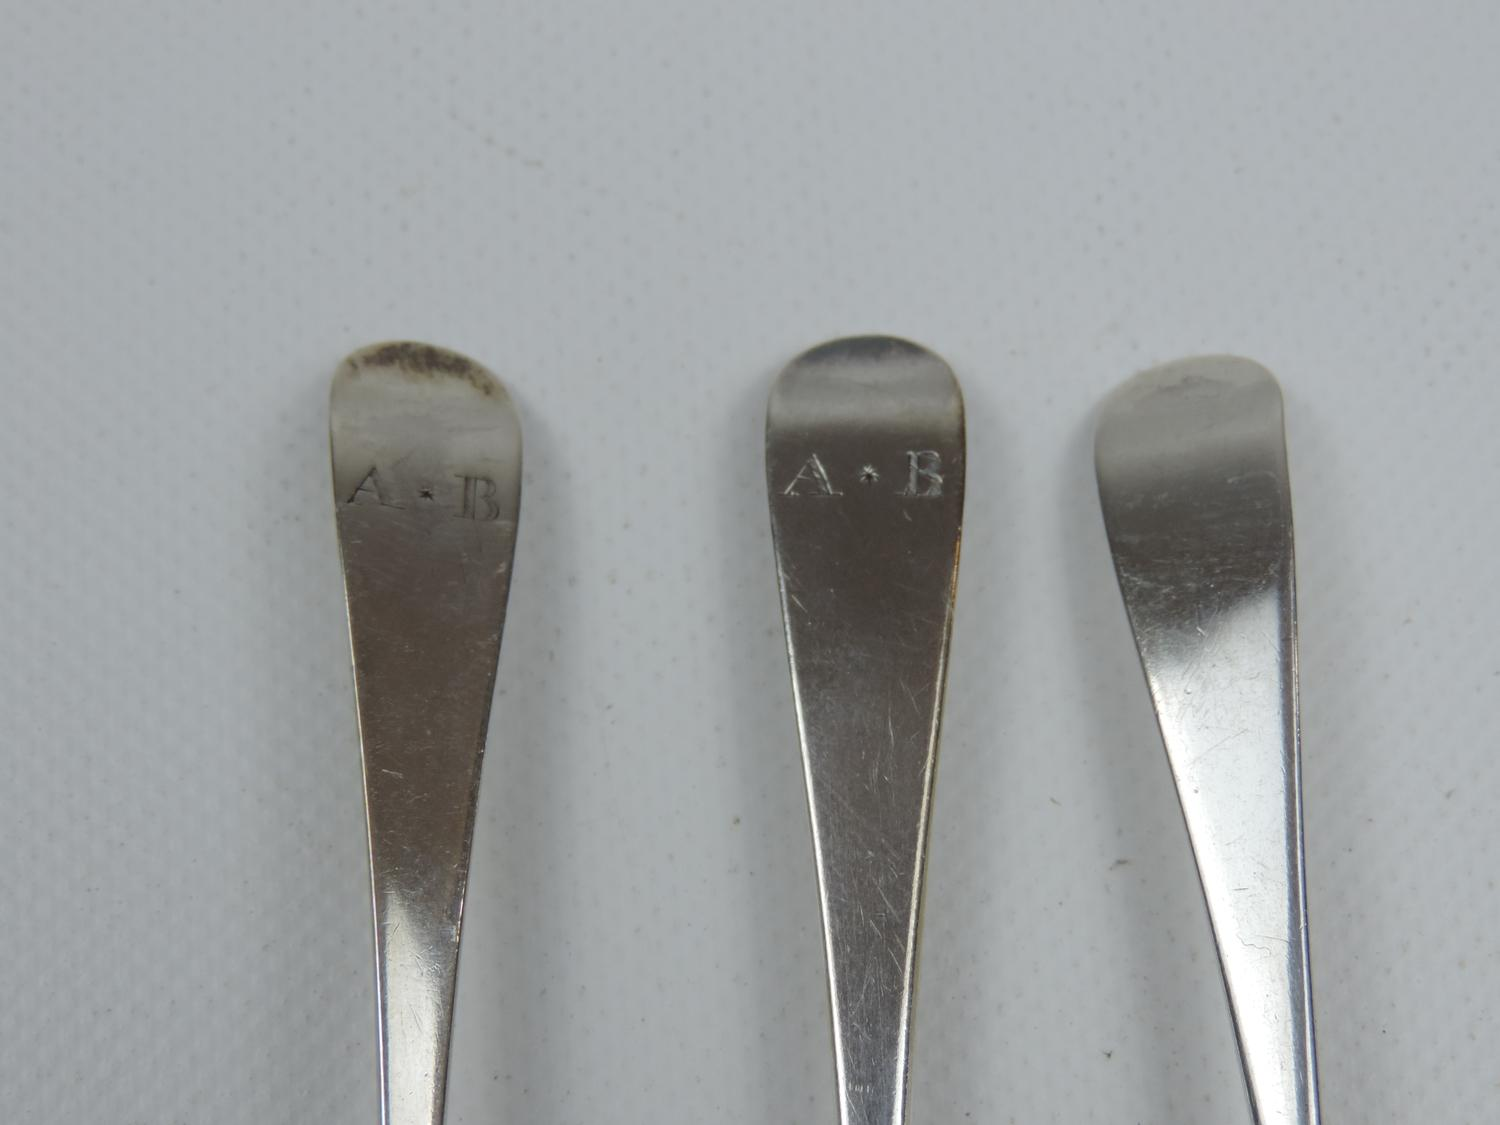 Lot 52 - 4x Georgian Silver Spoons - 2 with 'Rat Tail' Bowls - 56 grams